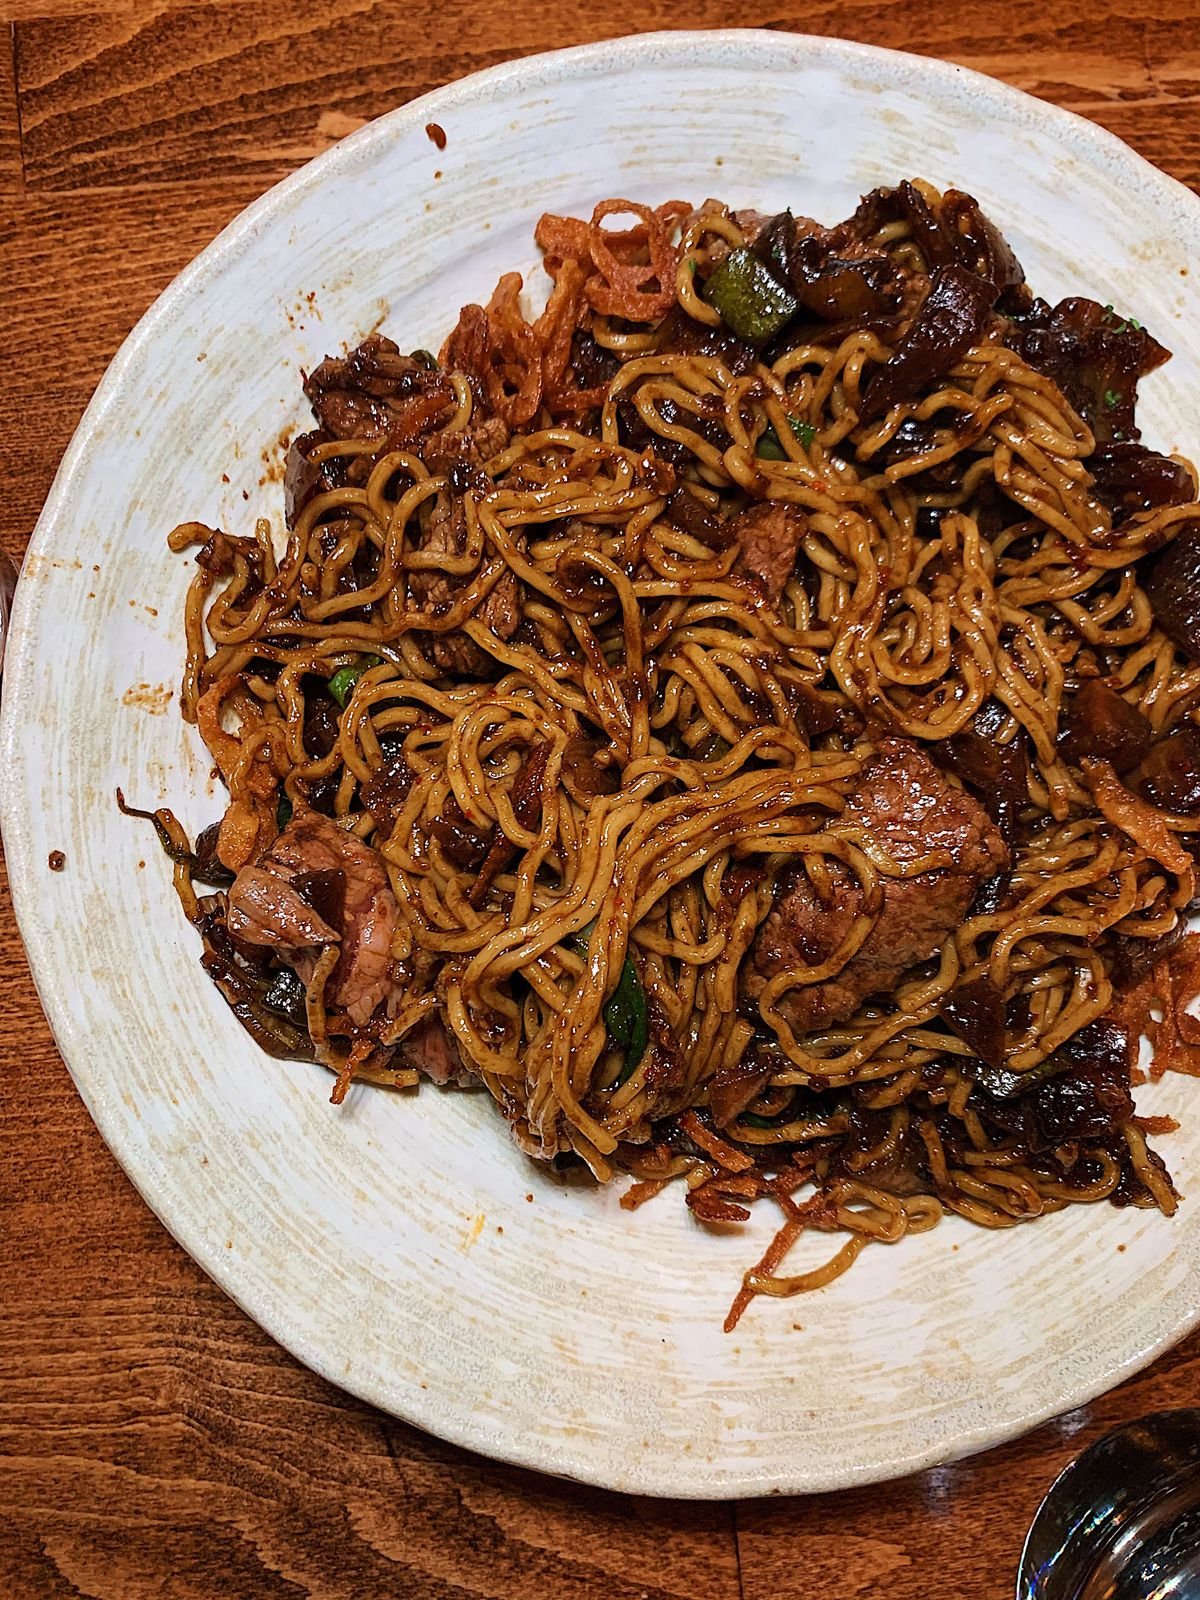 An overhead shot of a white bowl filled with brown noodles, beef, and assorted vegetables.